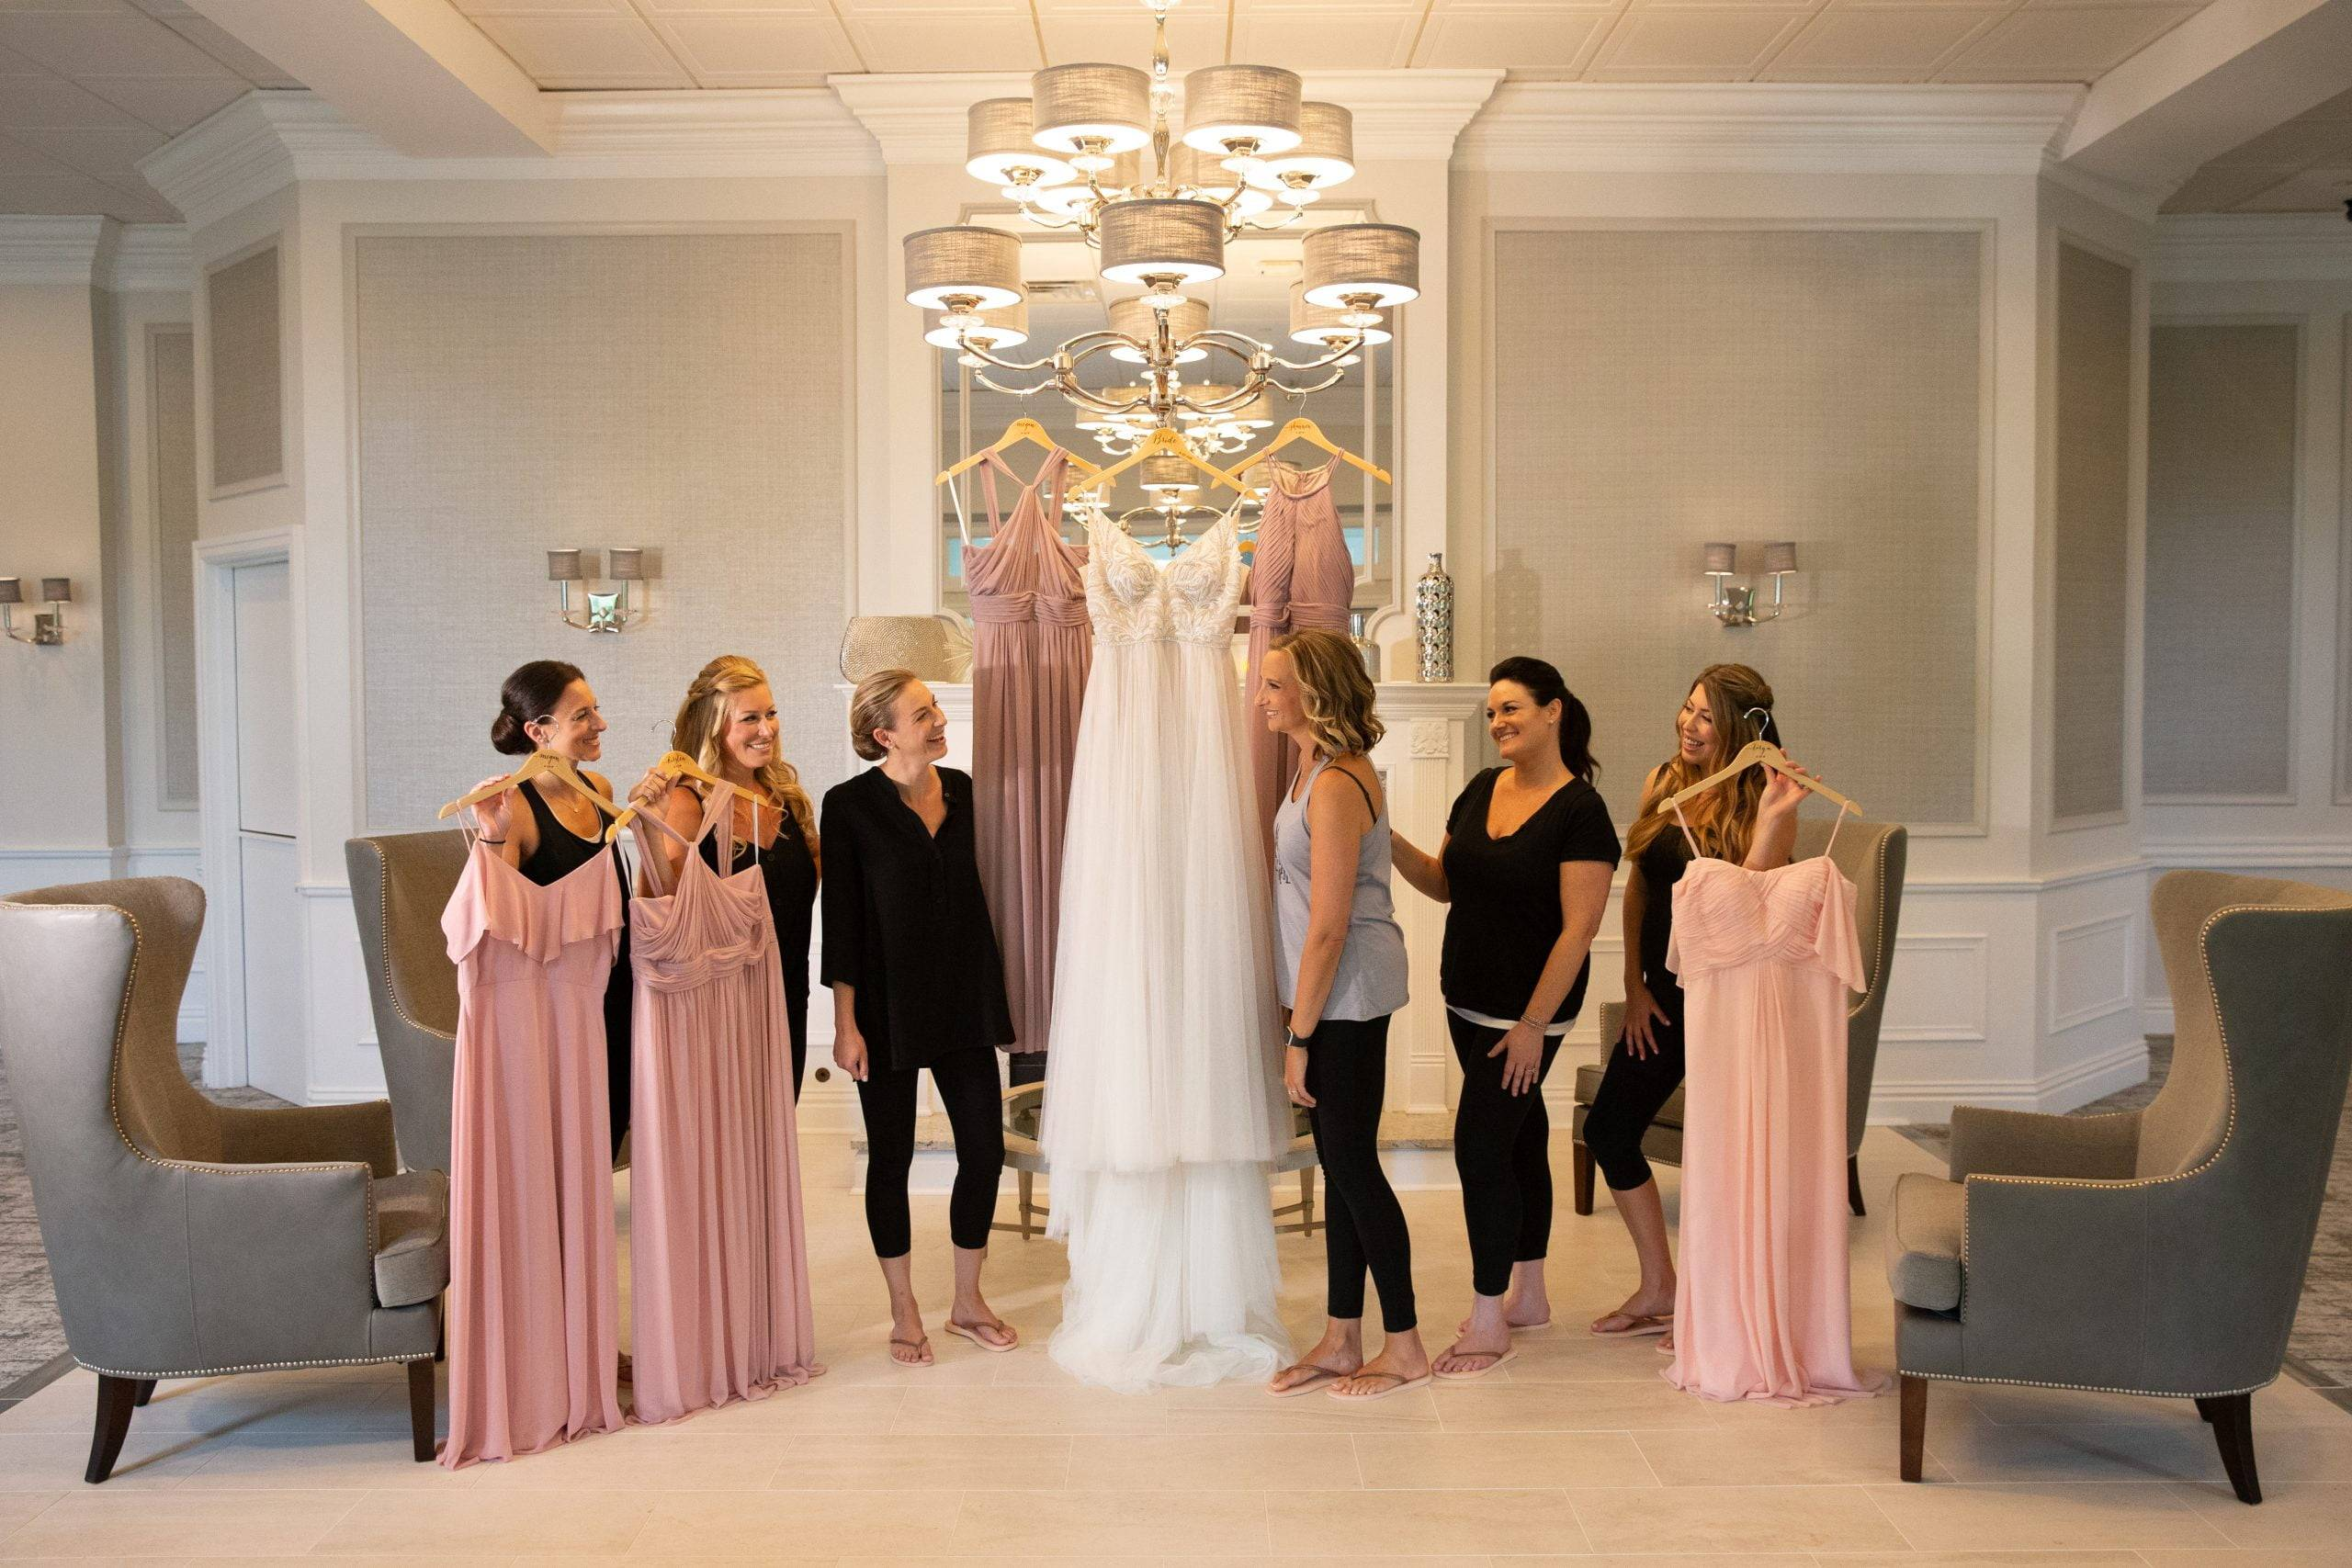 Brooklake bride and bridesmaids with their dresses